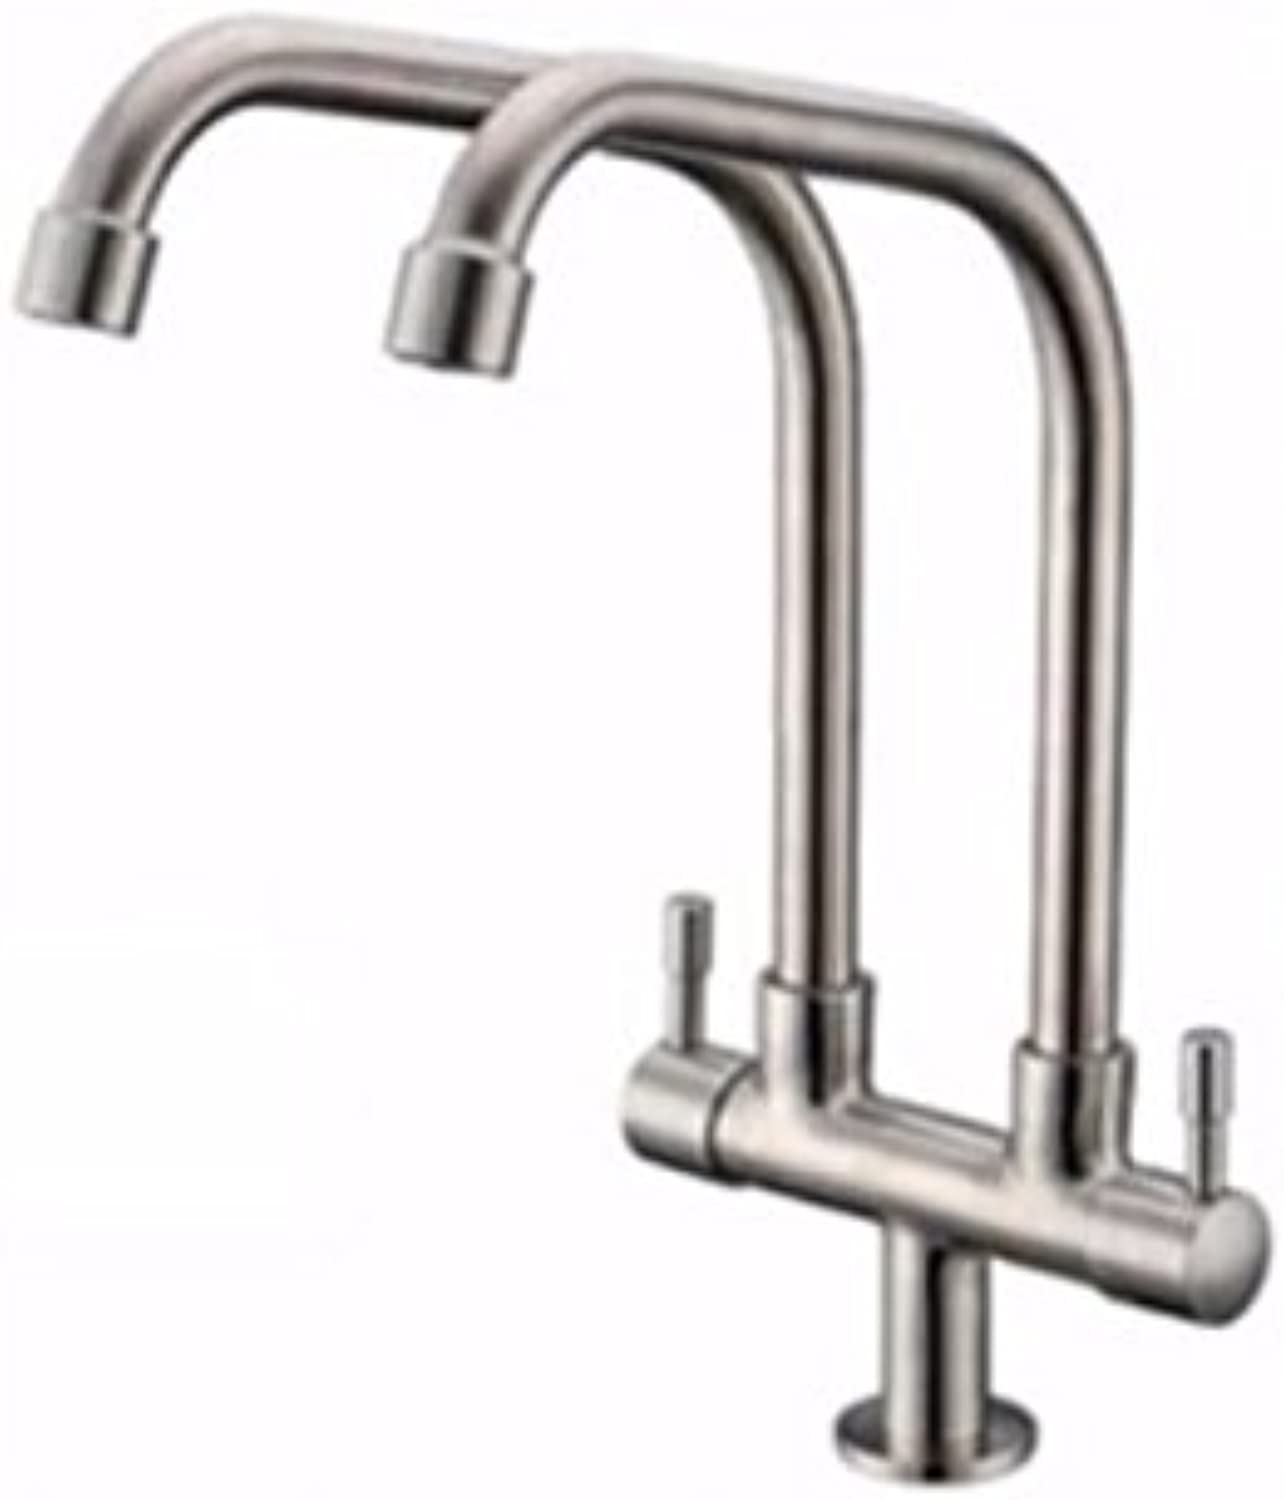 Commercial Single Lever Pull Down Kitchen Sink Faucet Brass Constructed Polished Stainless Steel Faucet, Single Cold Faucet, Single Kitchen Faucet